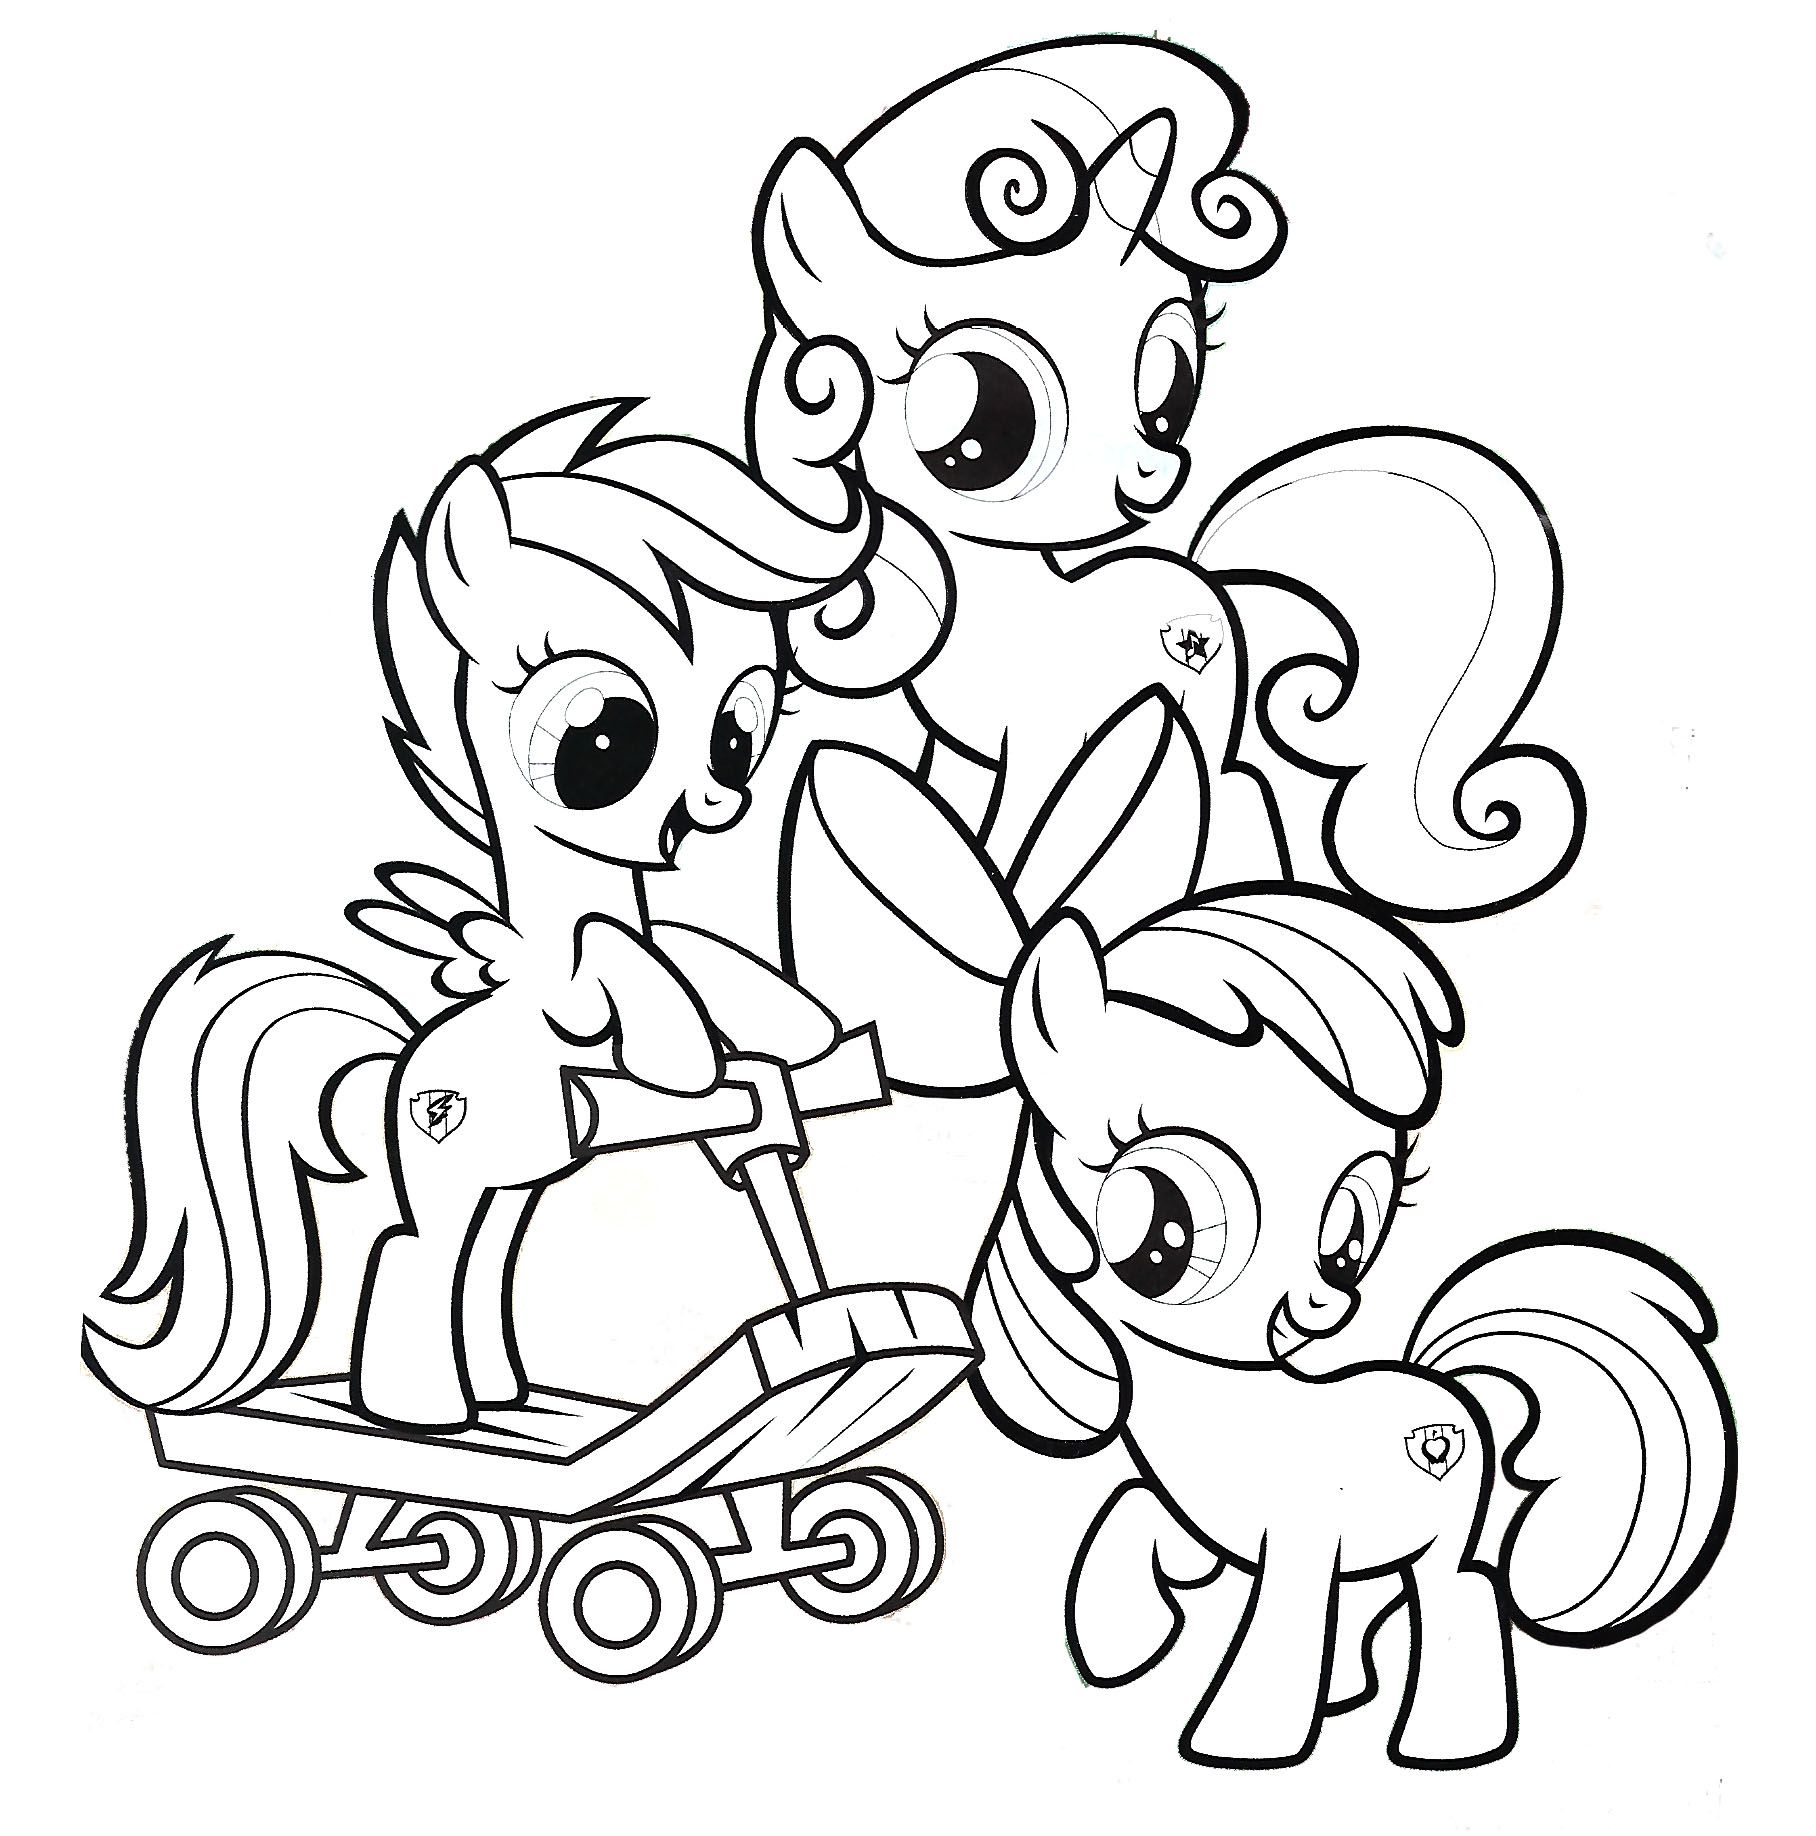 Cutie Mark Crusaders My Little Pony Coloring Page My Little Pony Coloring My Little Pony Printable Cartoon Coloring Pages